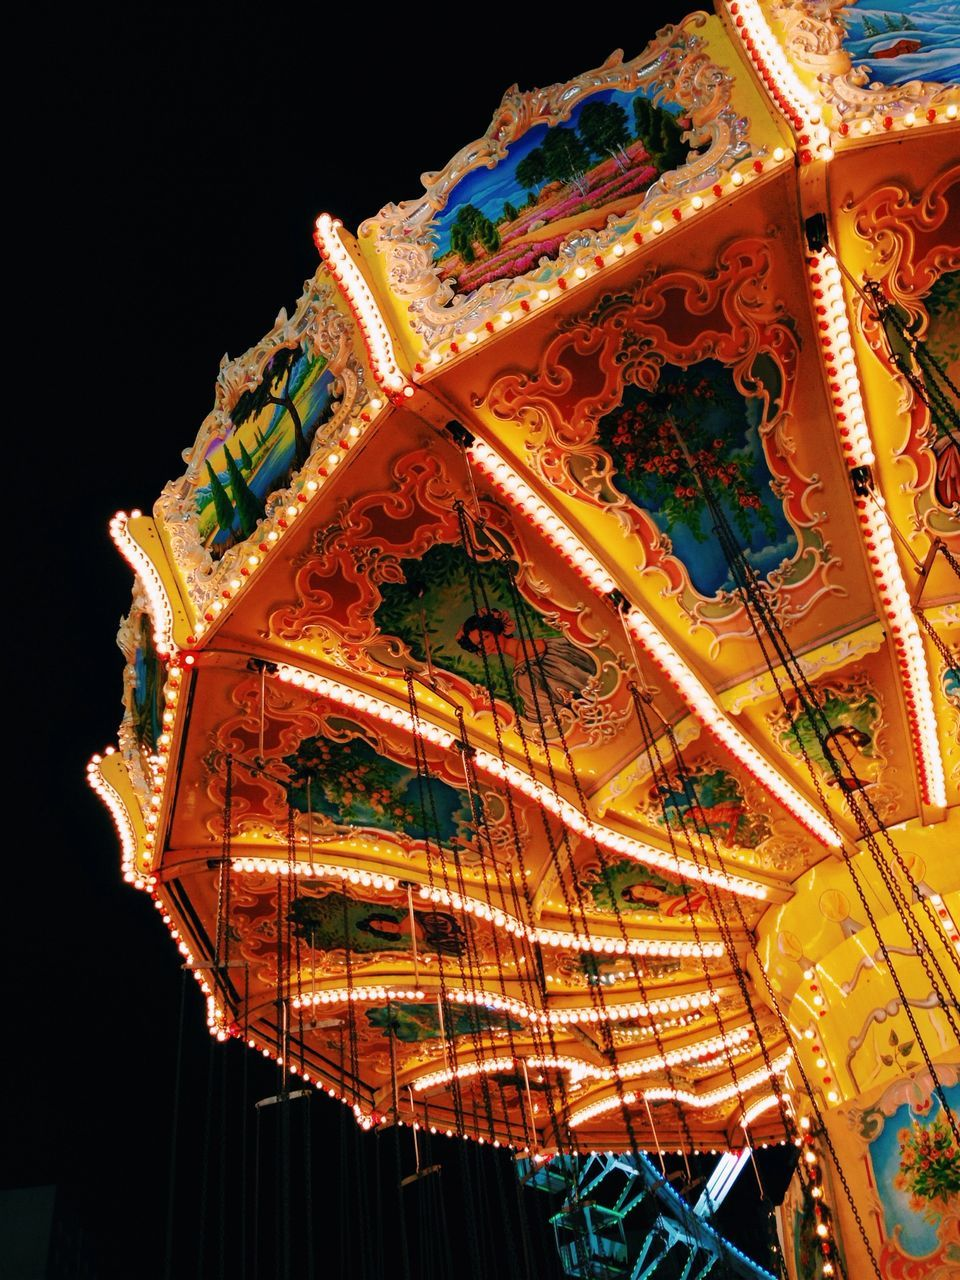 amusement park, low angle view, arts culture and entertainment, night, illuminated, amusement park ride, built structure, no people, carousel, architecture, outdoors, sky, close-up